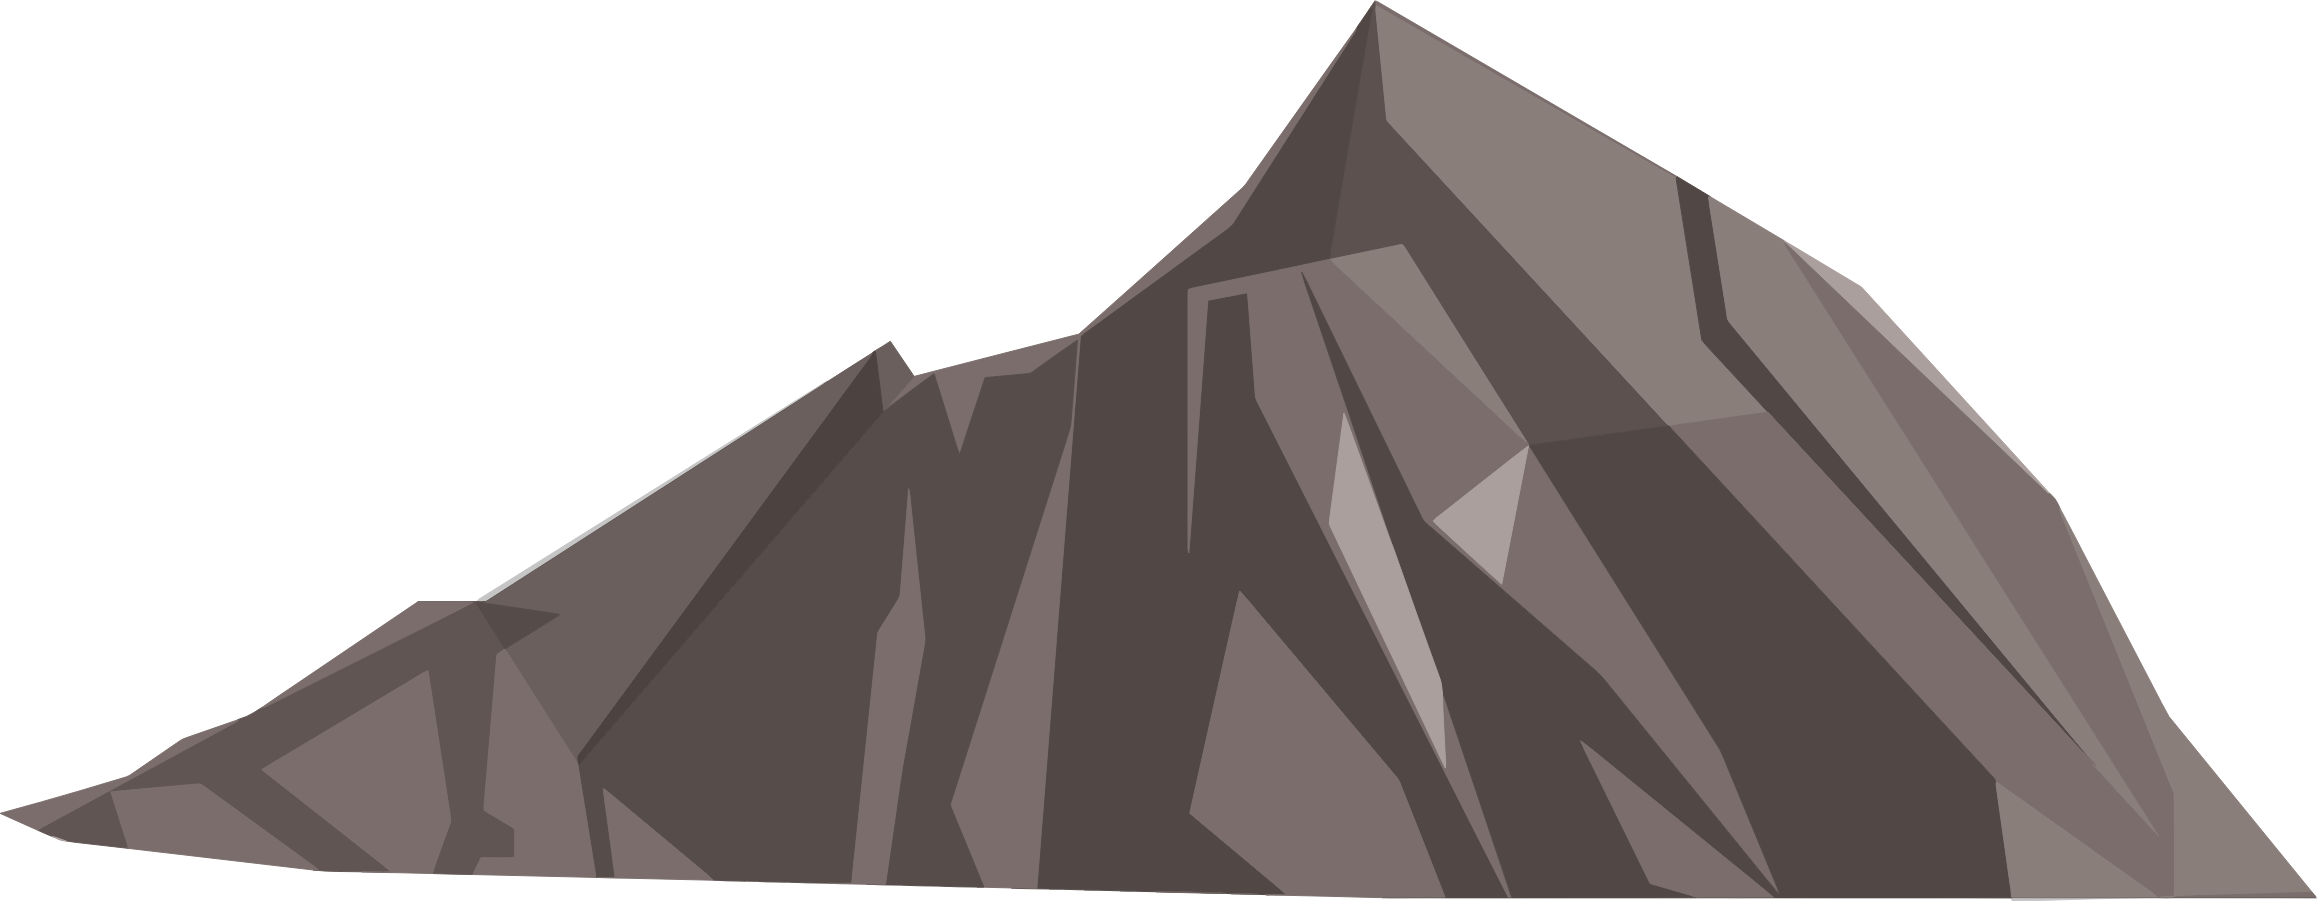 Money clipart mountain. Png transparent free images